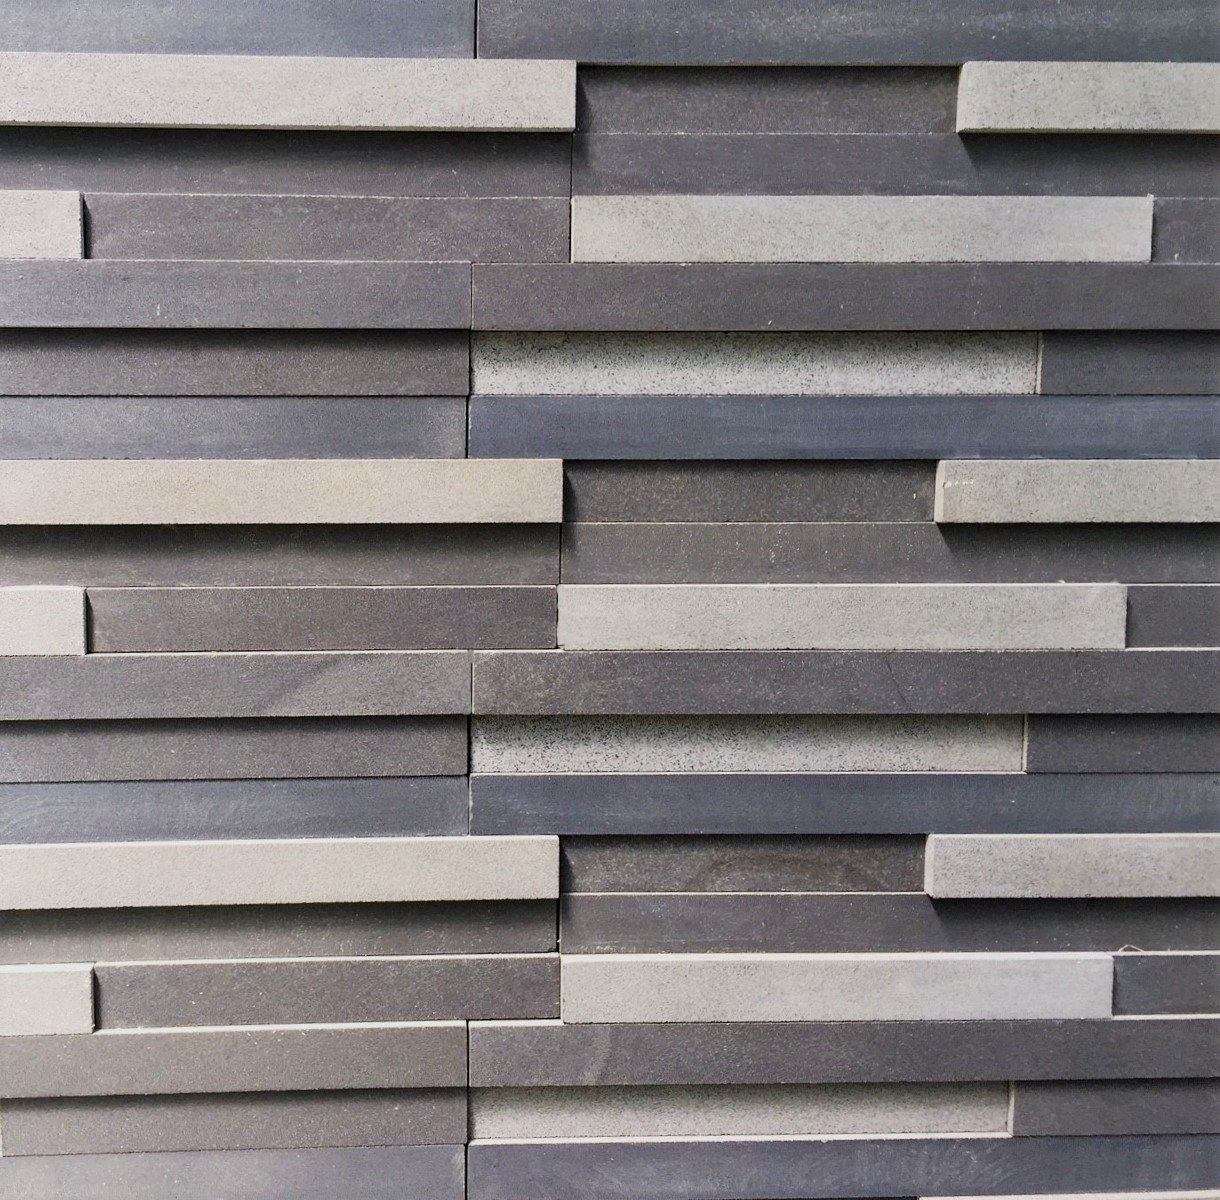 Slate discounts offers a wide variety of stack stone cladding for Exterior stone cladding panels